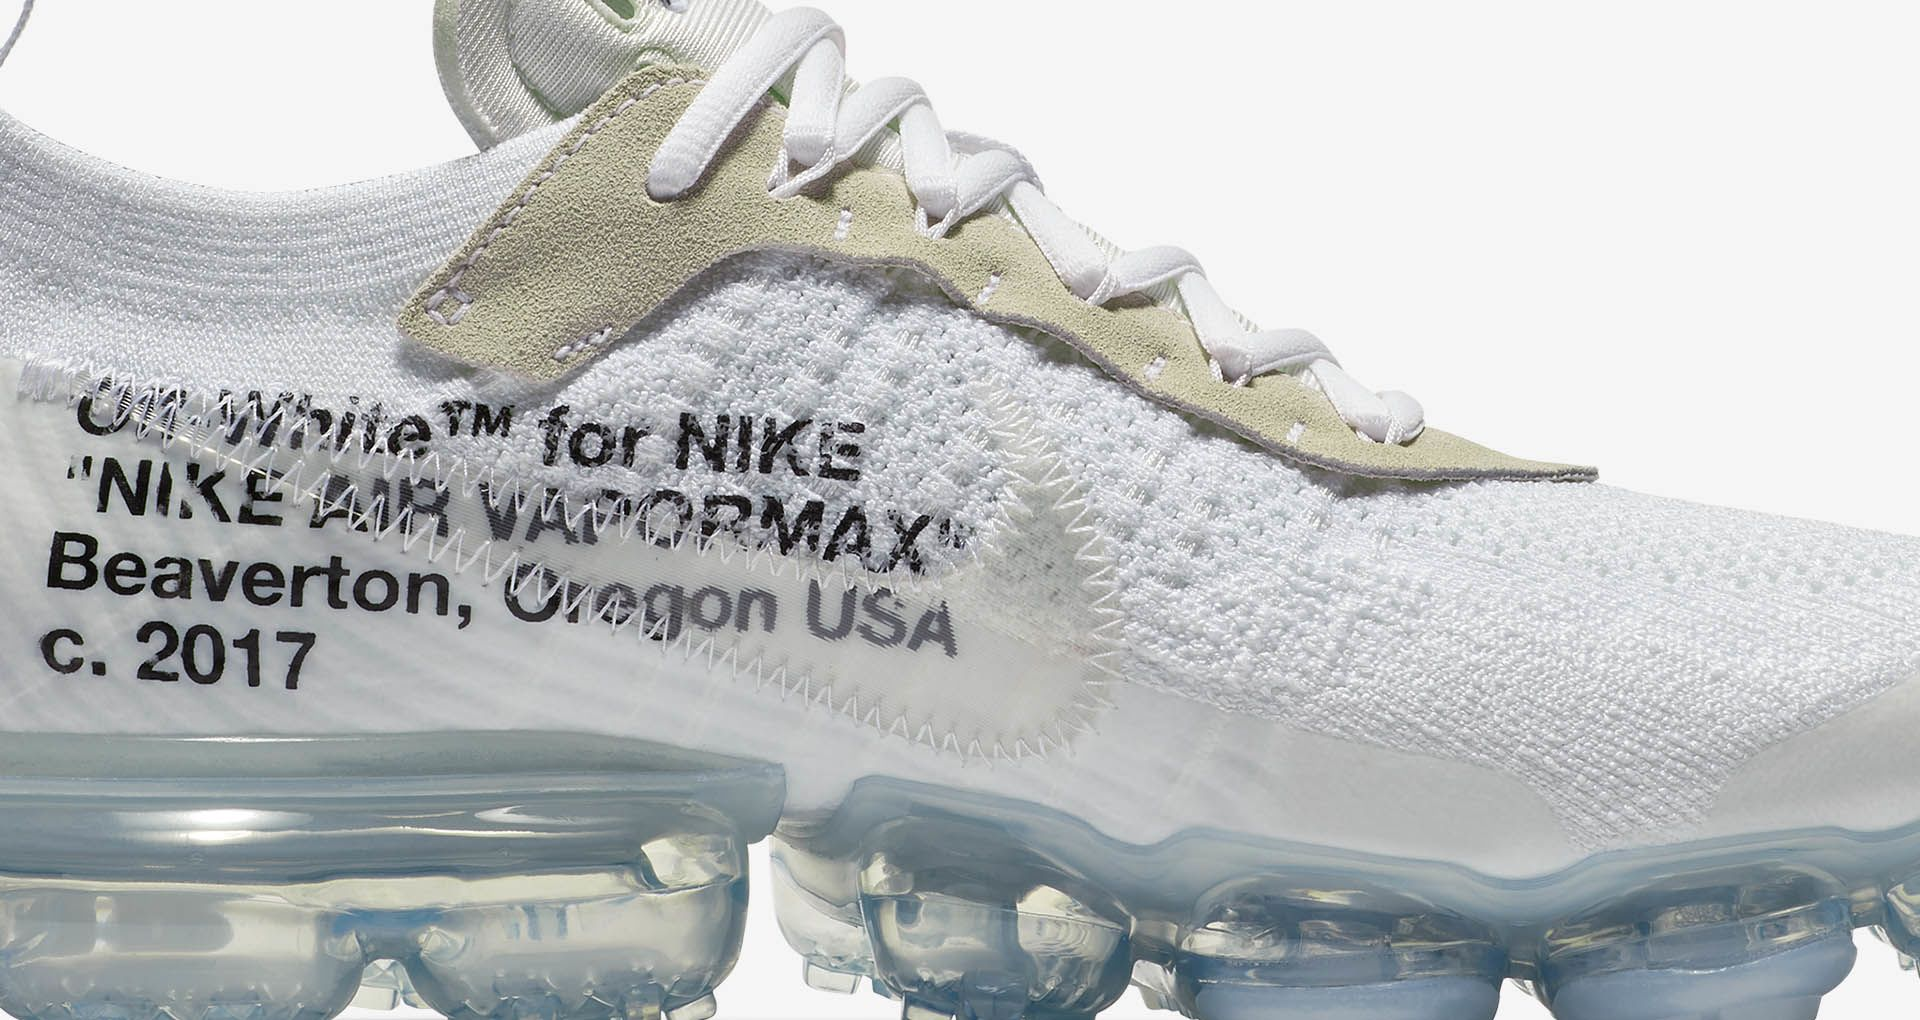 Nike The Ten Air Vapormax Off White 'White' Release Date